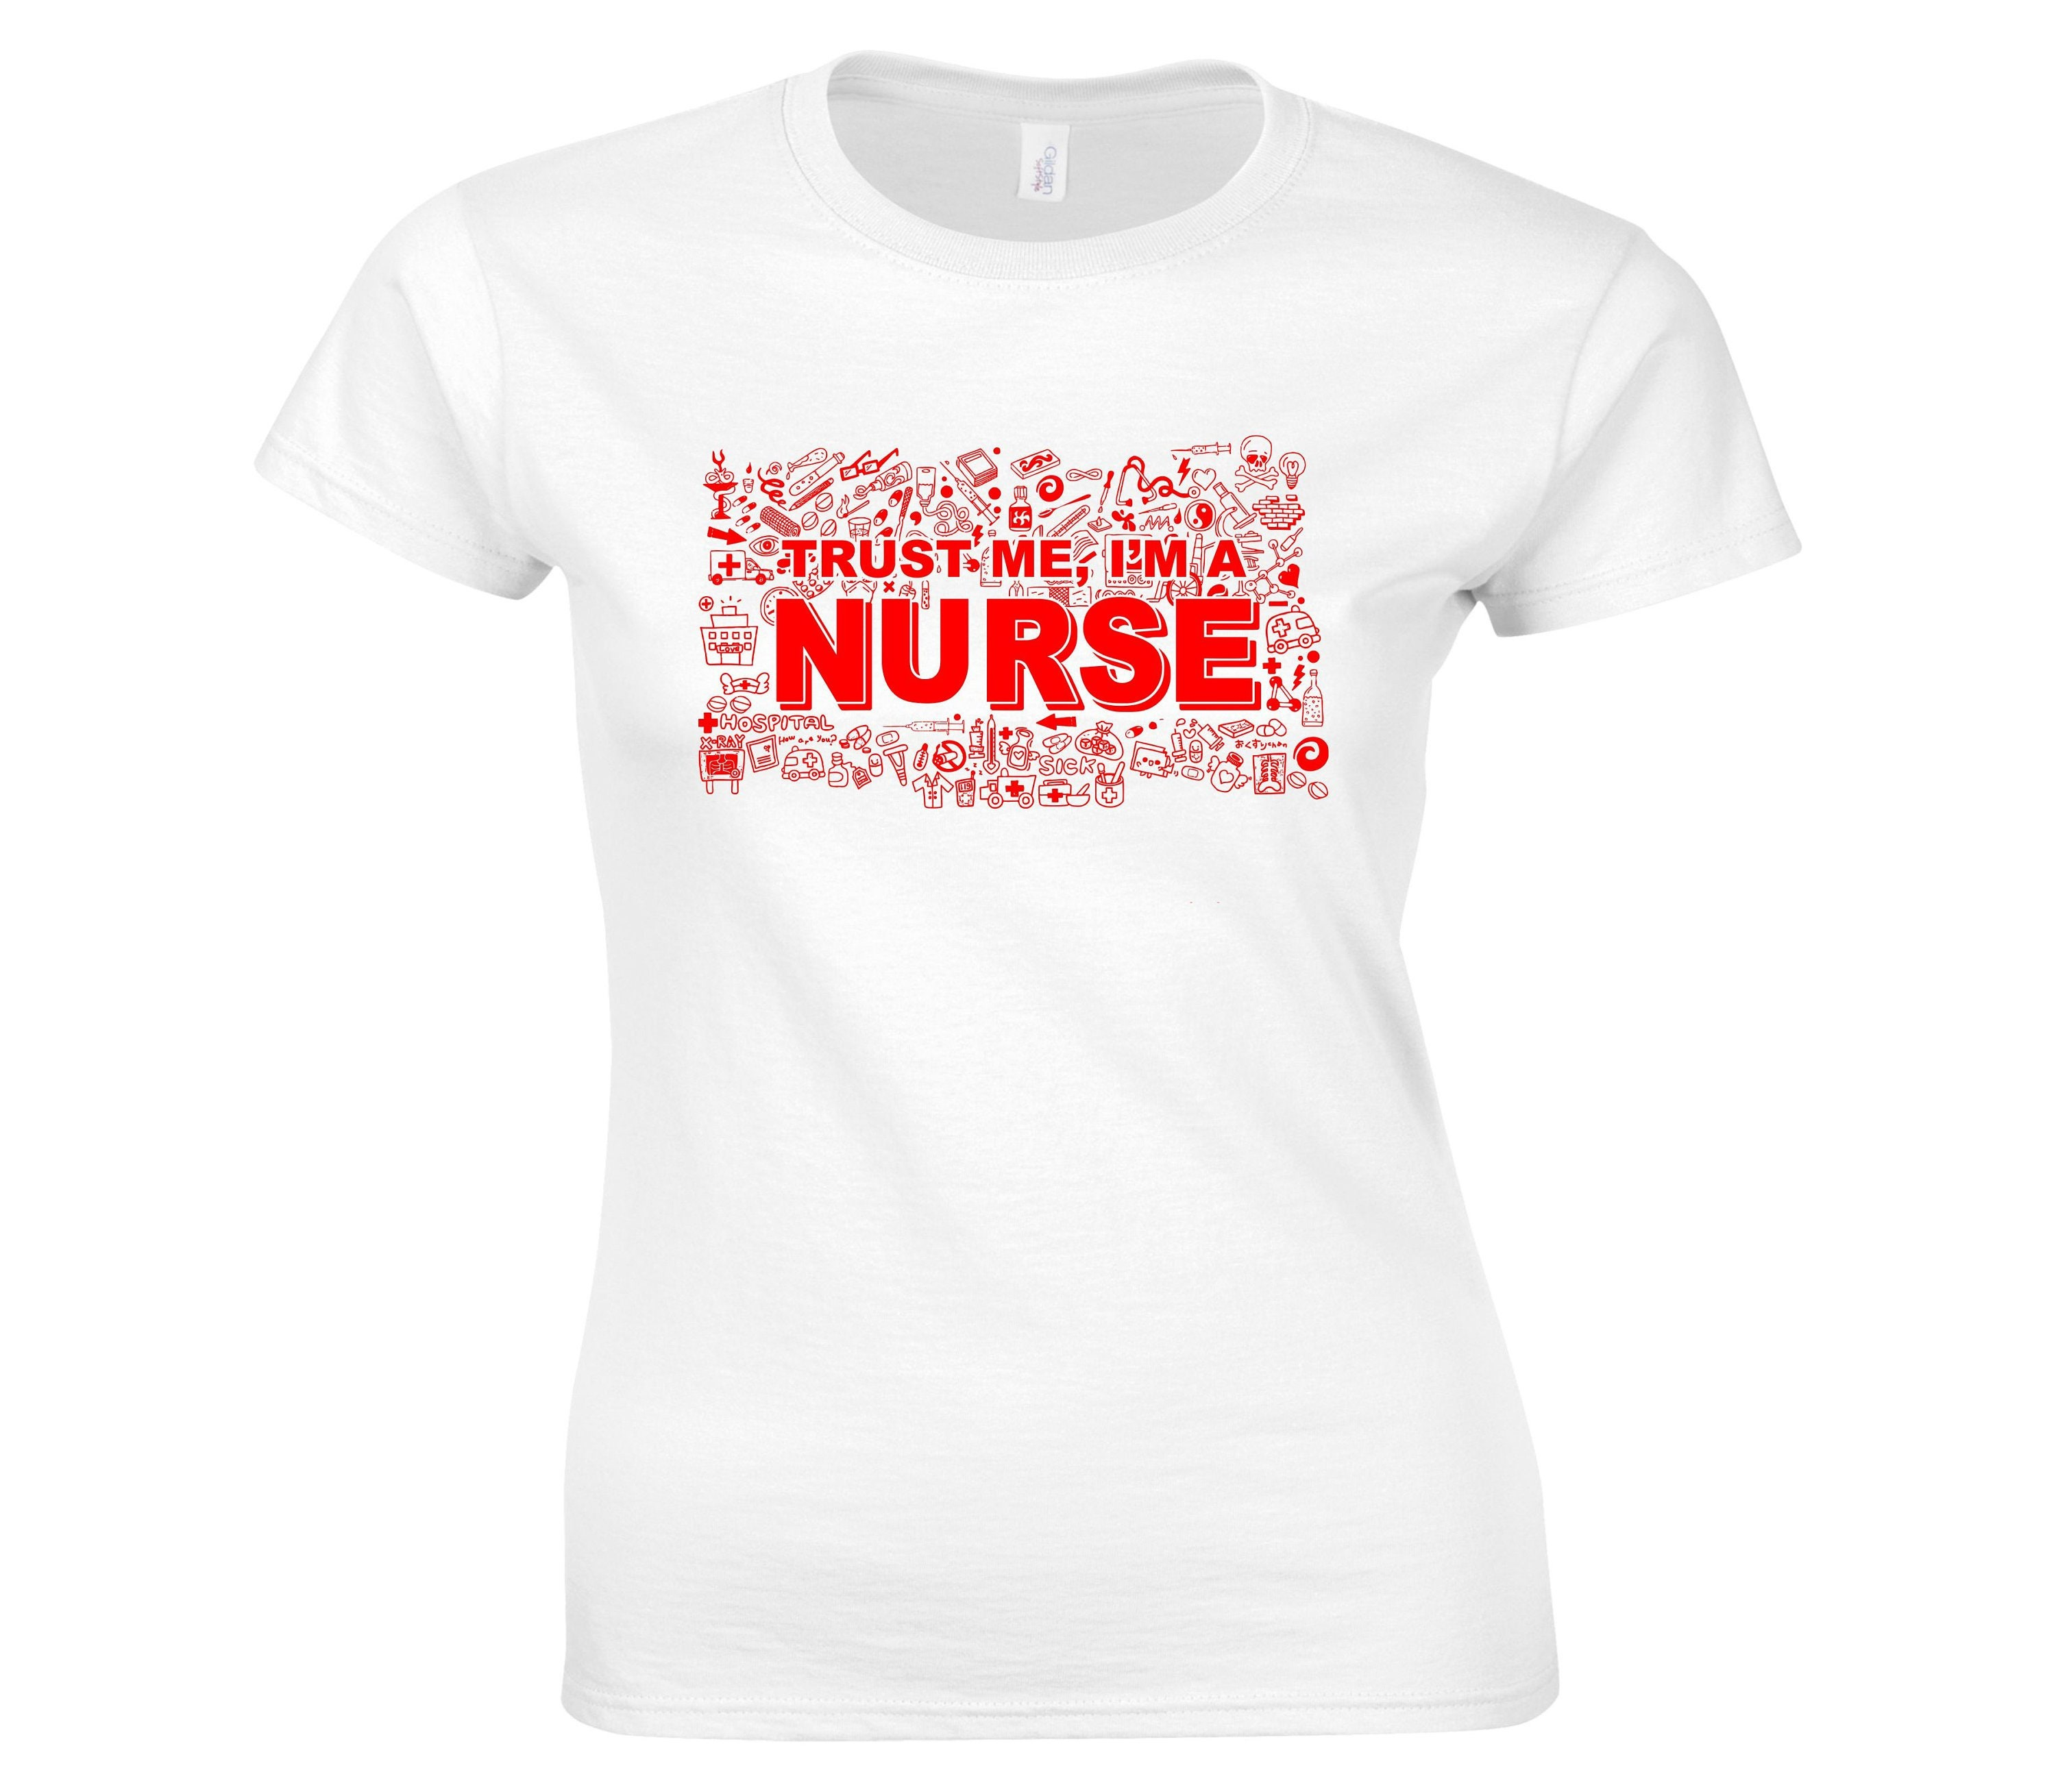 680f4f40d78dab Funny Humorous Trust Me I m A Nurse Ladies Fitted T-shirt